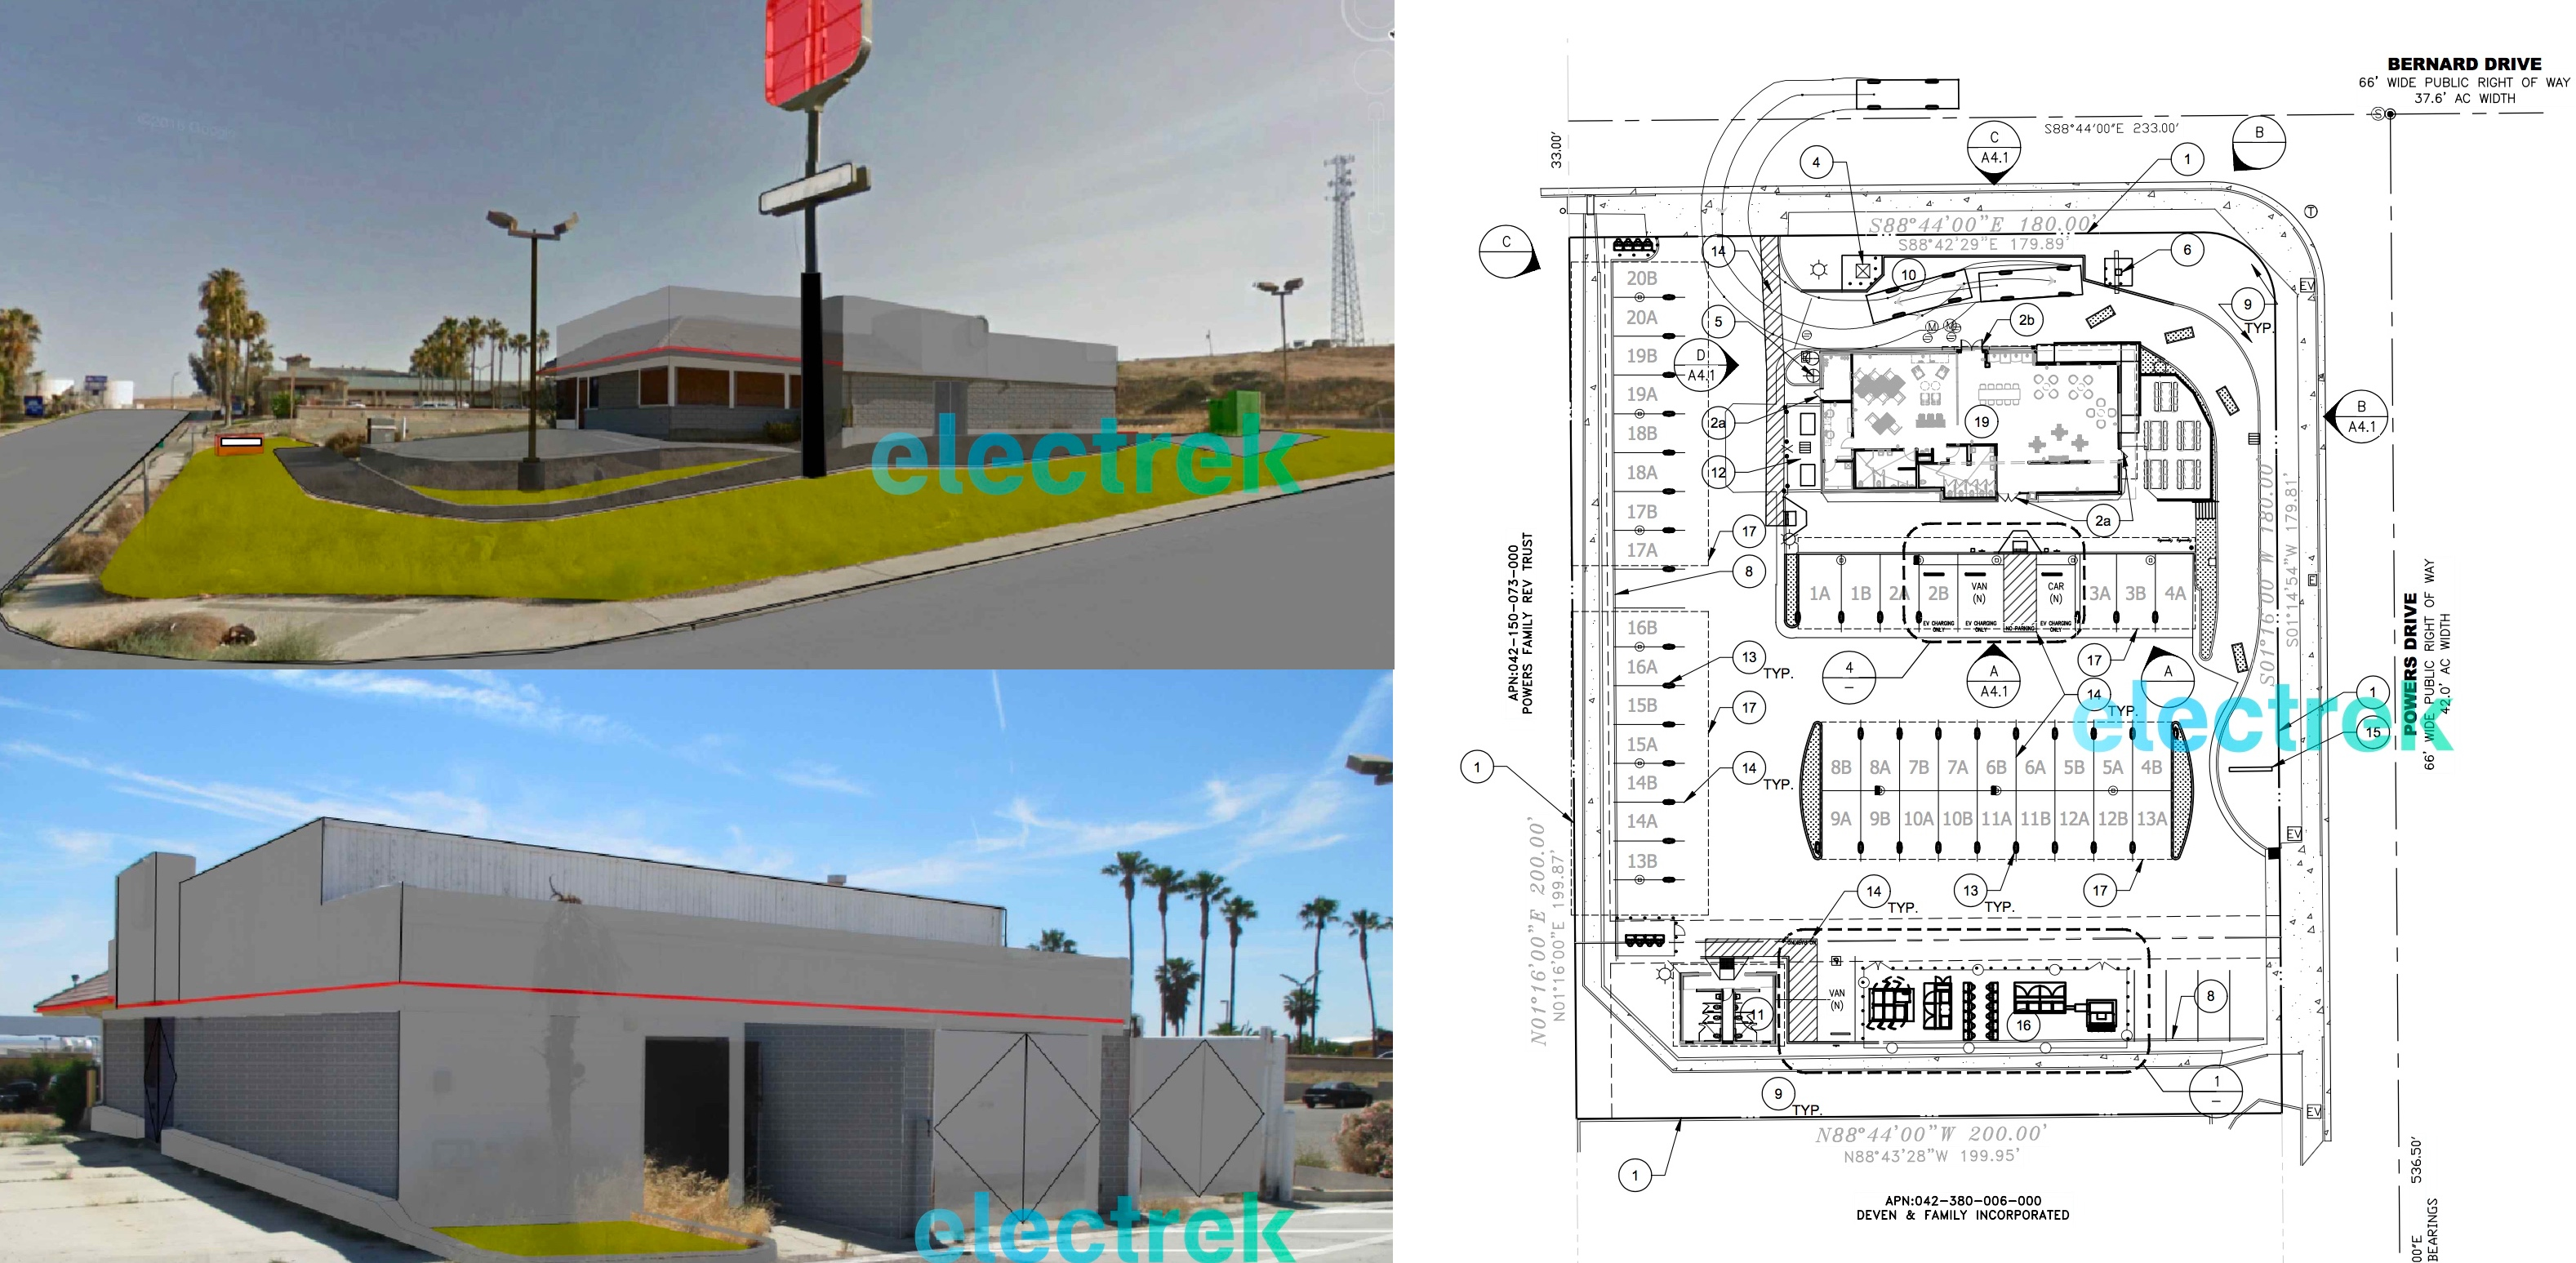 Tesla Charging Station Schematic Wire Data Schema Circuit Desolator Latching Relay An Exclusive Look At S Plan To Build Largest Ev Rh Electrek Co Stations East Coast Locations